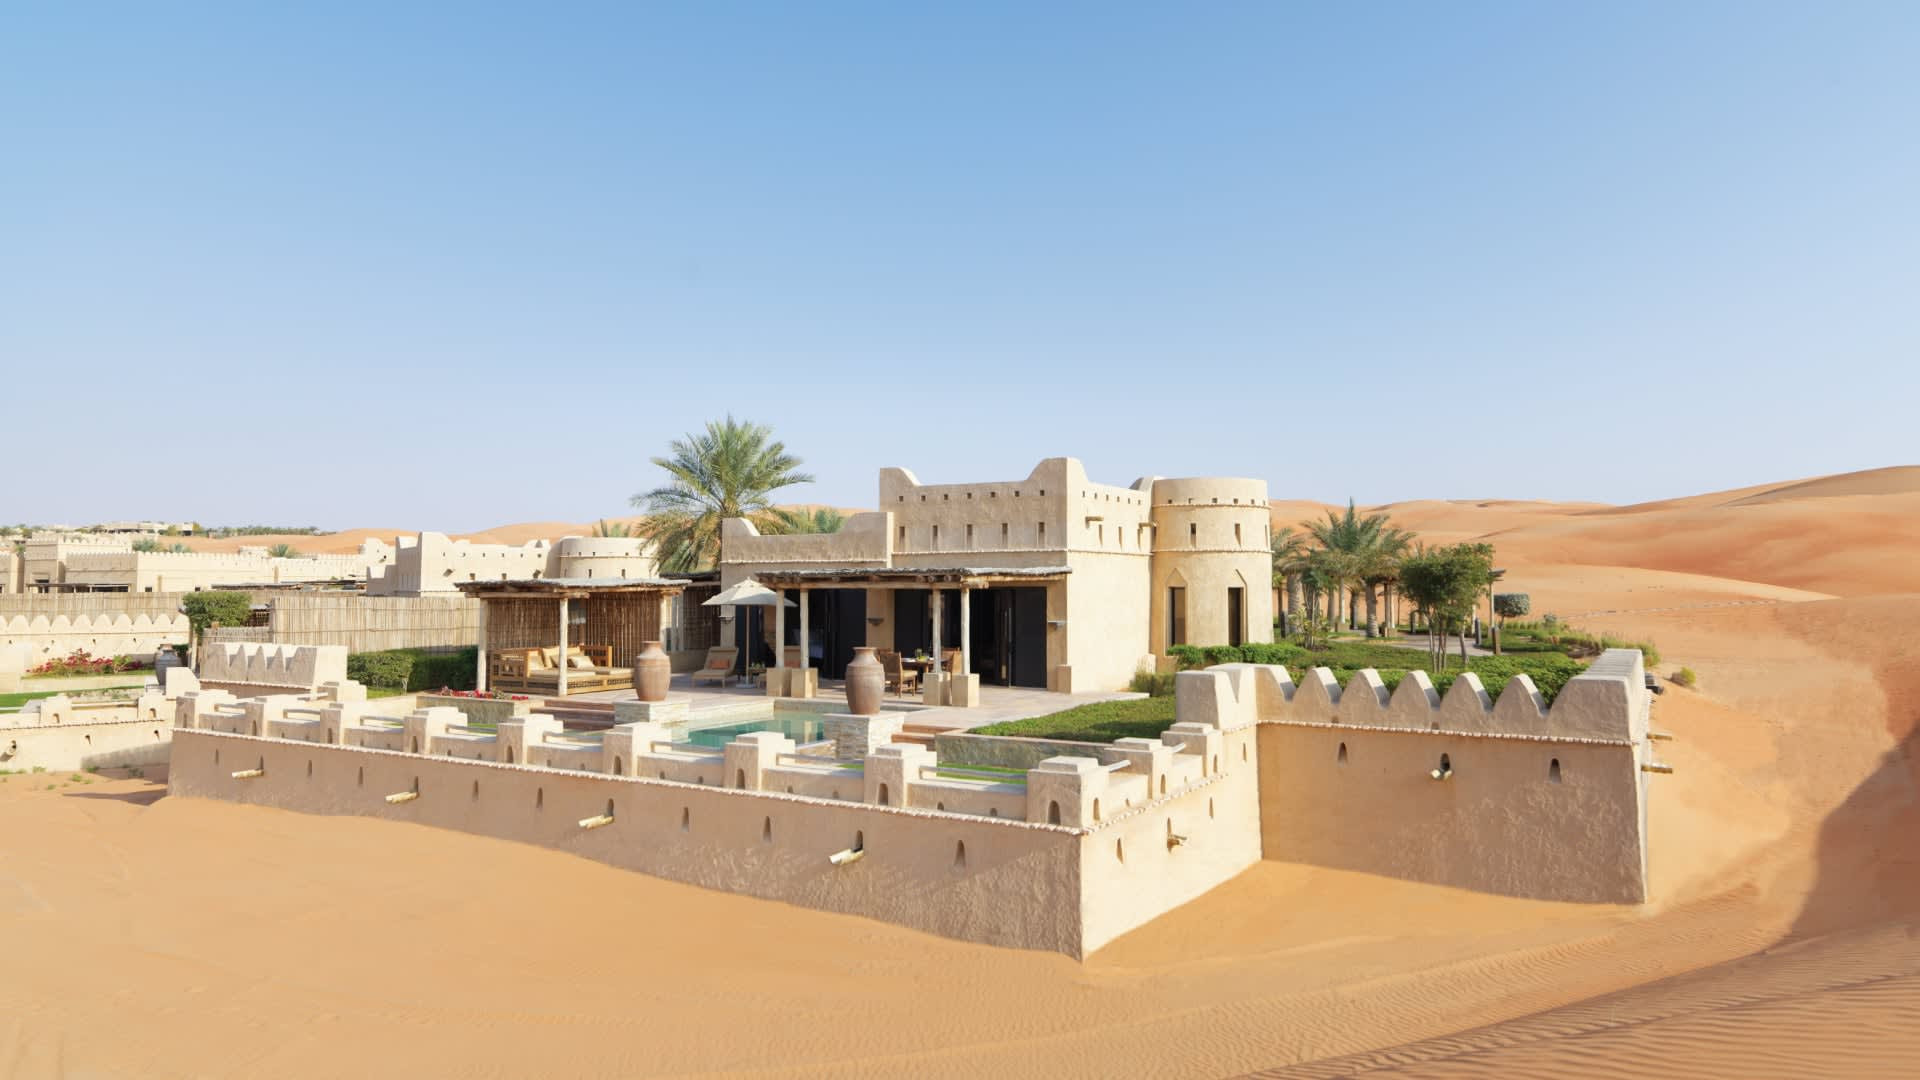 https://assets.anantara.com/image/upload/q_auto/media/minor/anantara/images/royal-pavilion-villas-by-qasr-al-sarab/the-resort/desktop-banner/royal_pavilion_by_qasr_al_sarab_desktop_banner_1920x1080.jpg